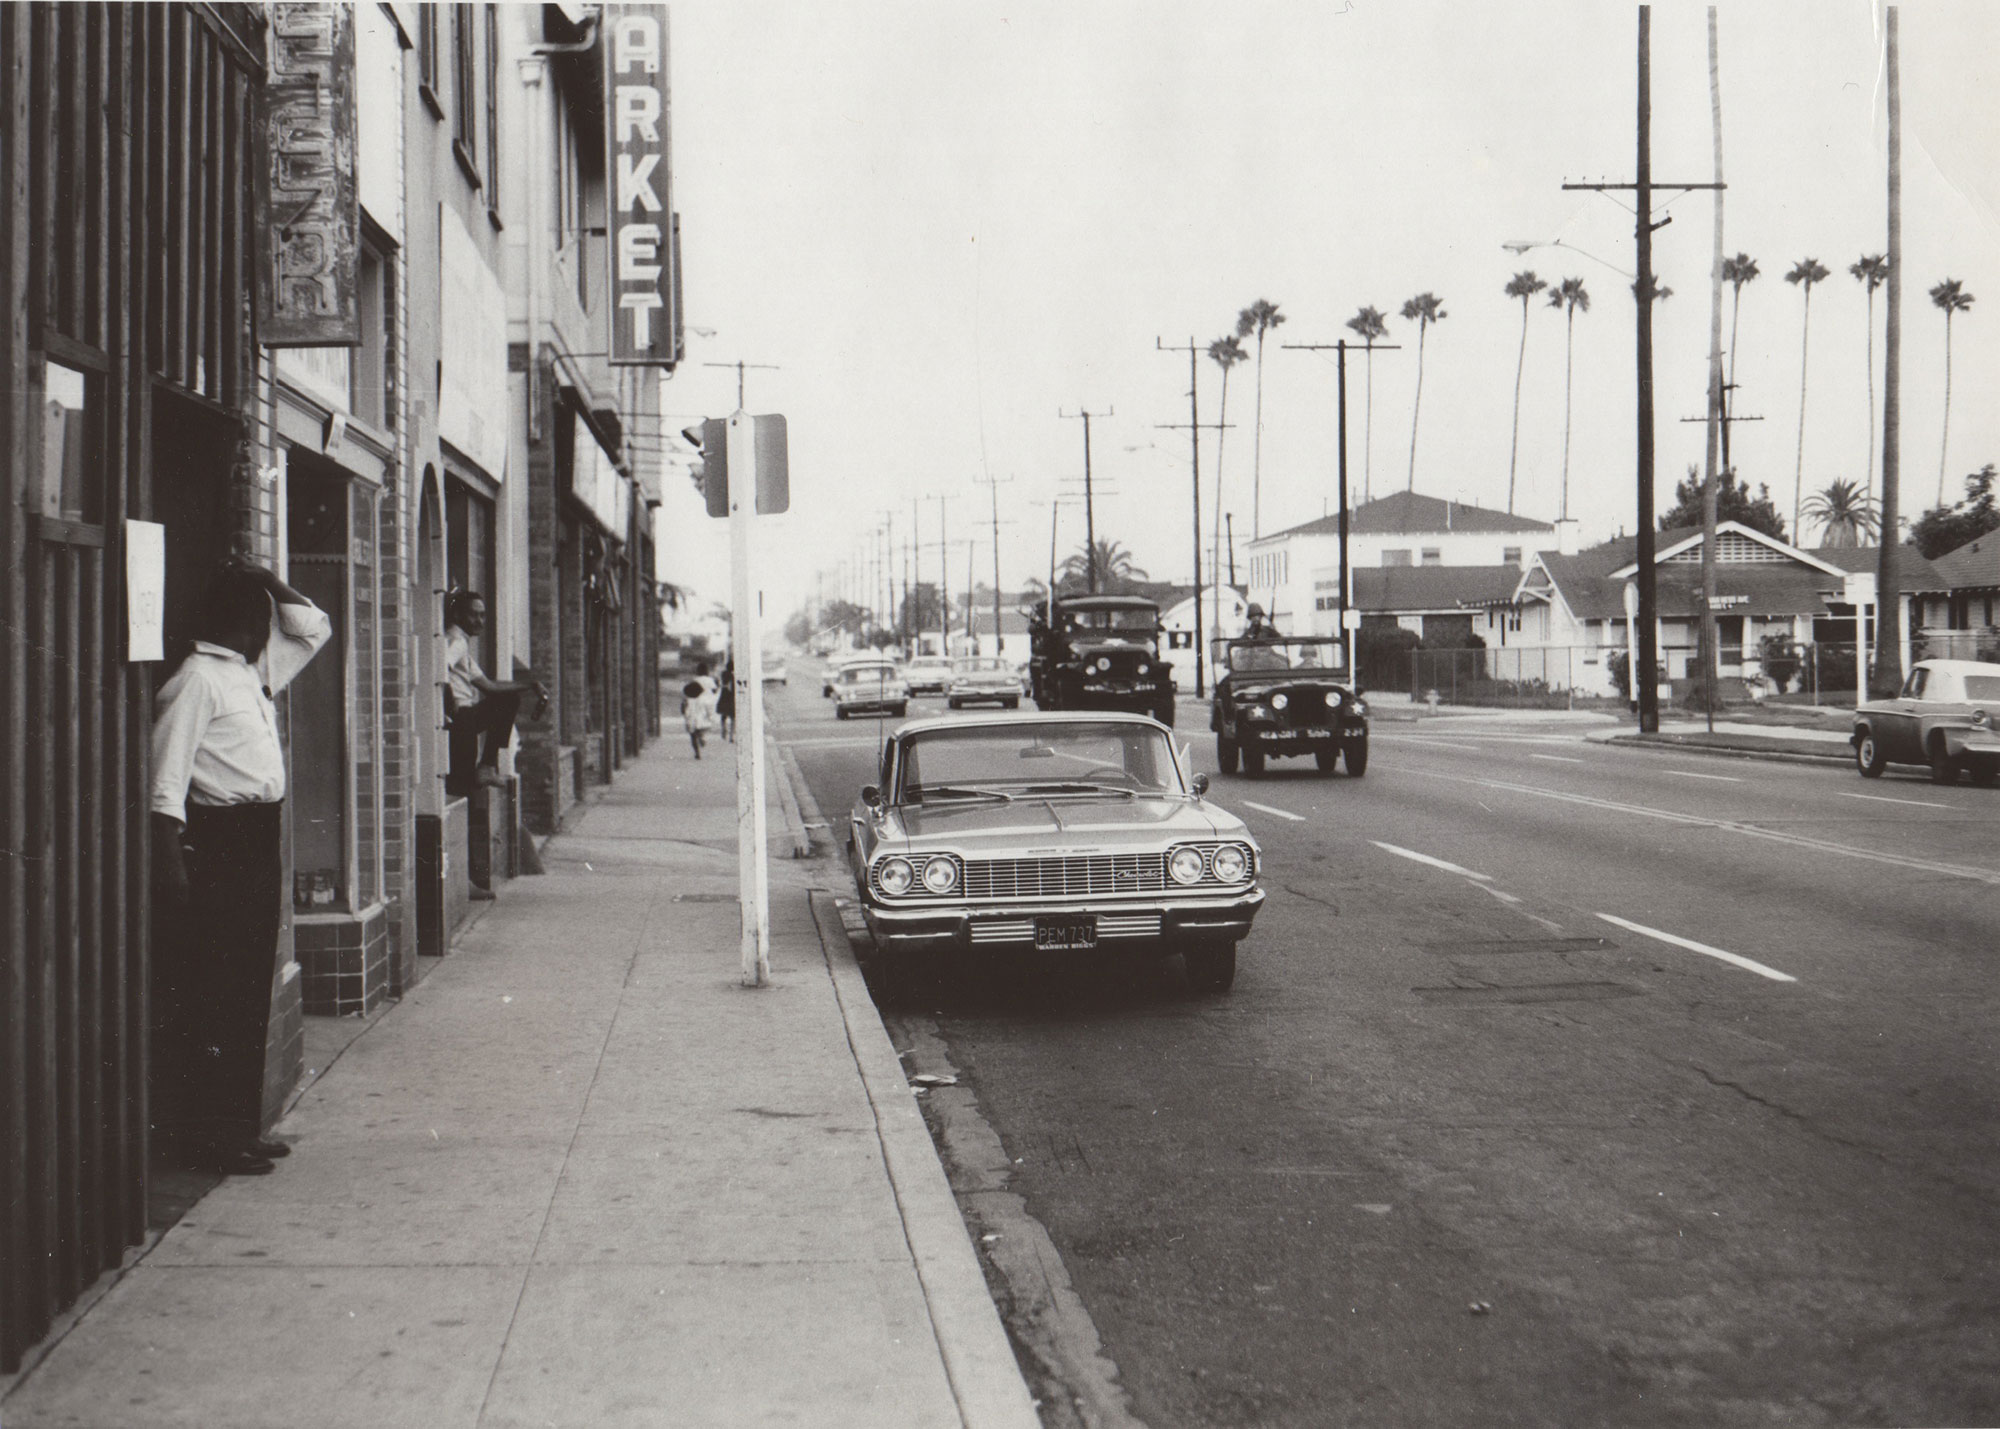 East los angeles ghetto